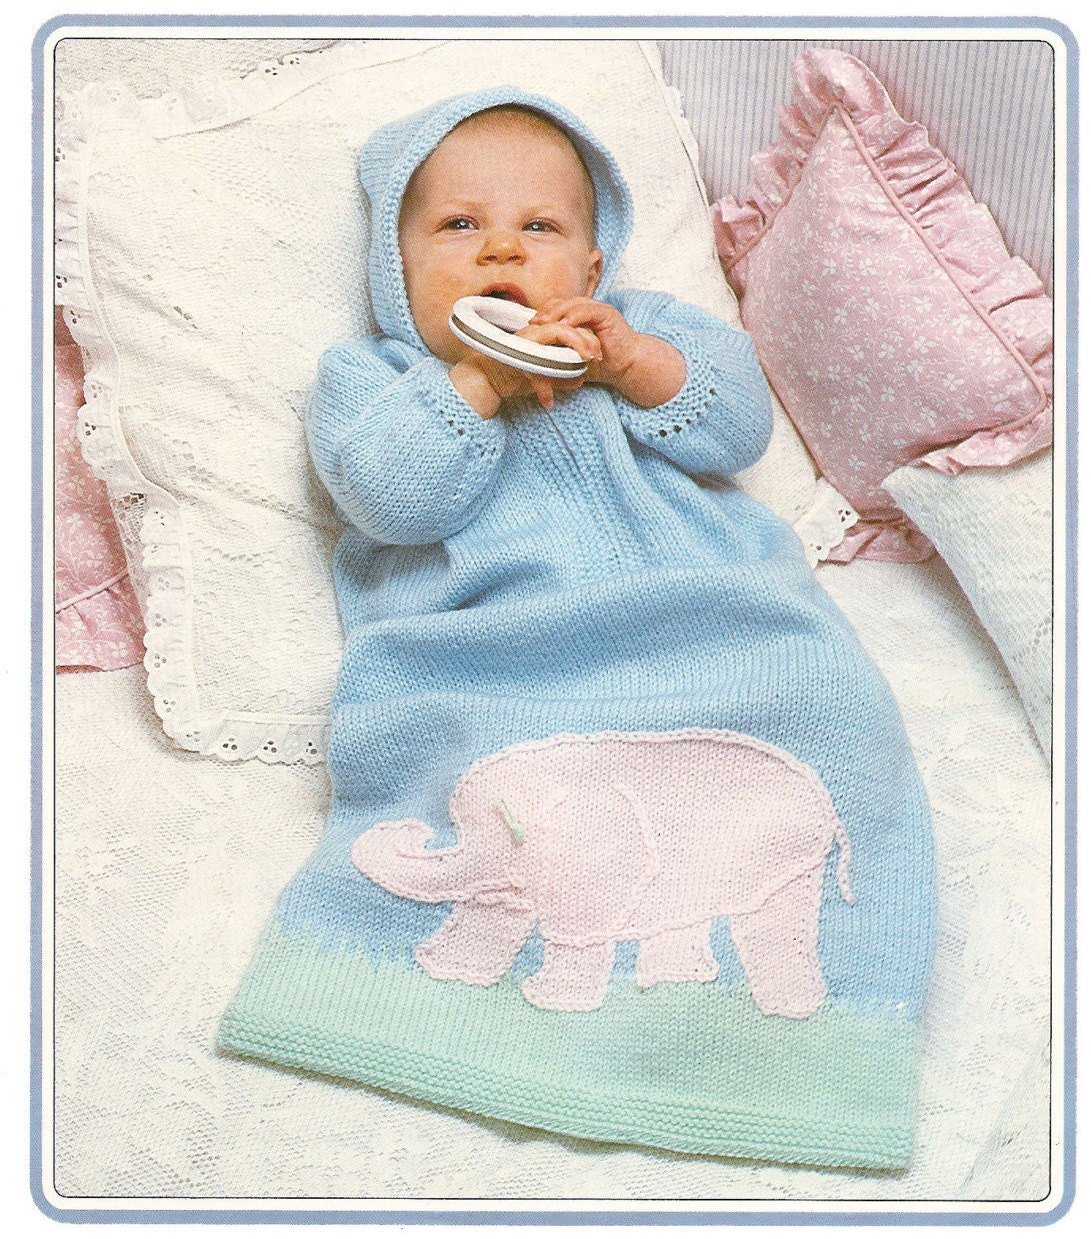 Knitting Pattern Sleeping Bag Baby : Knitting Pattern Baby Sleeping Bag Elephant Motif DK PDF